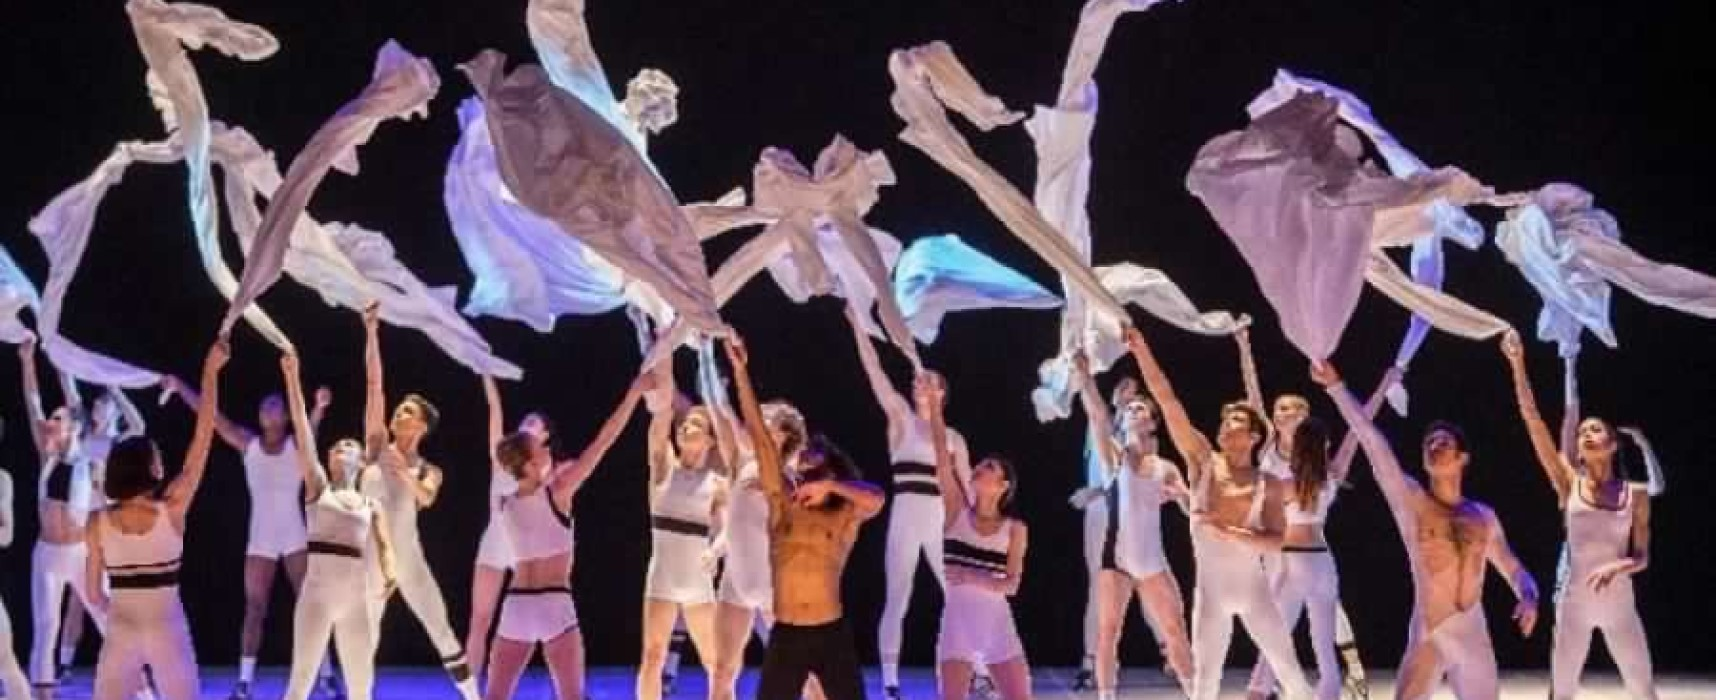 La BroadWay Dance Studio guarda all'Oro